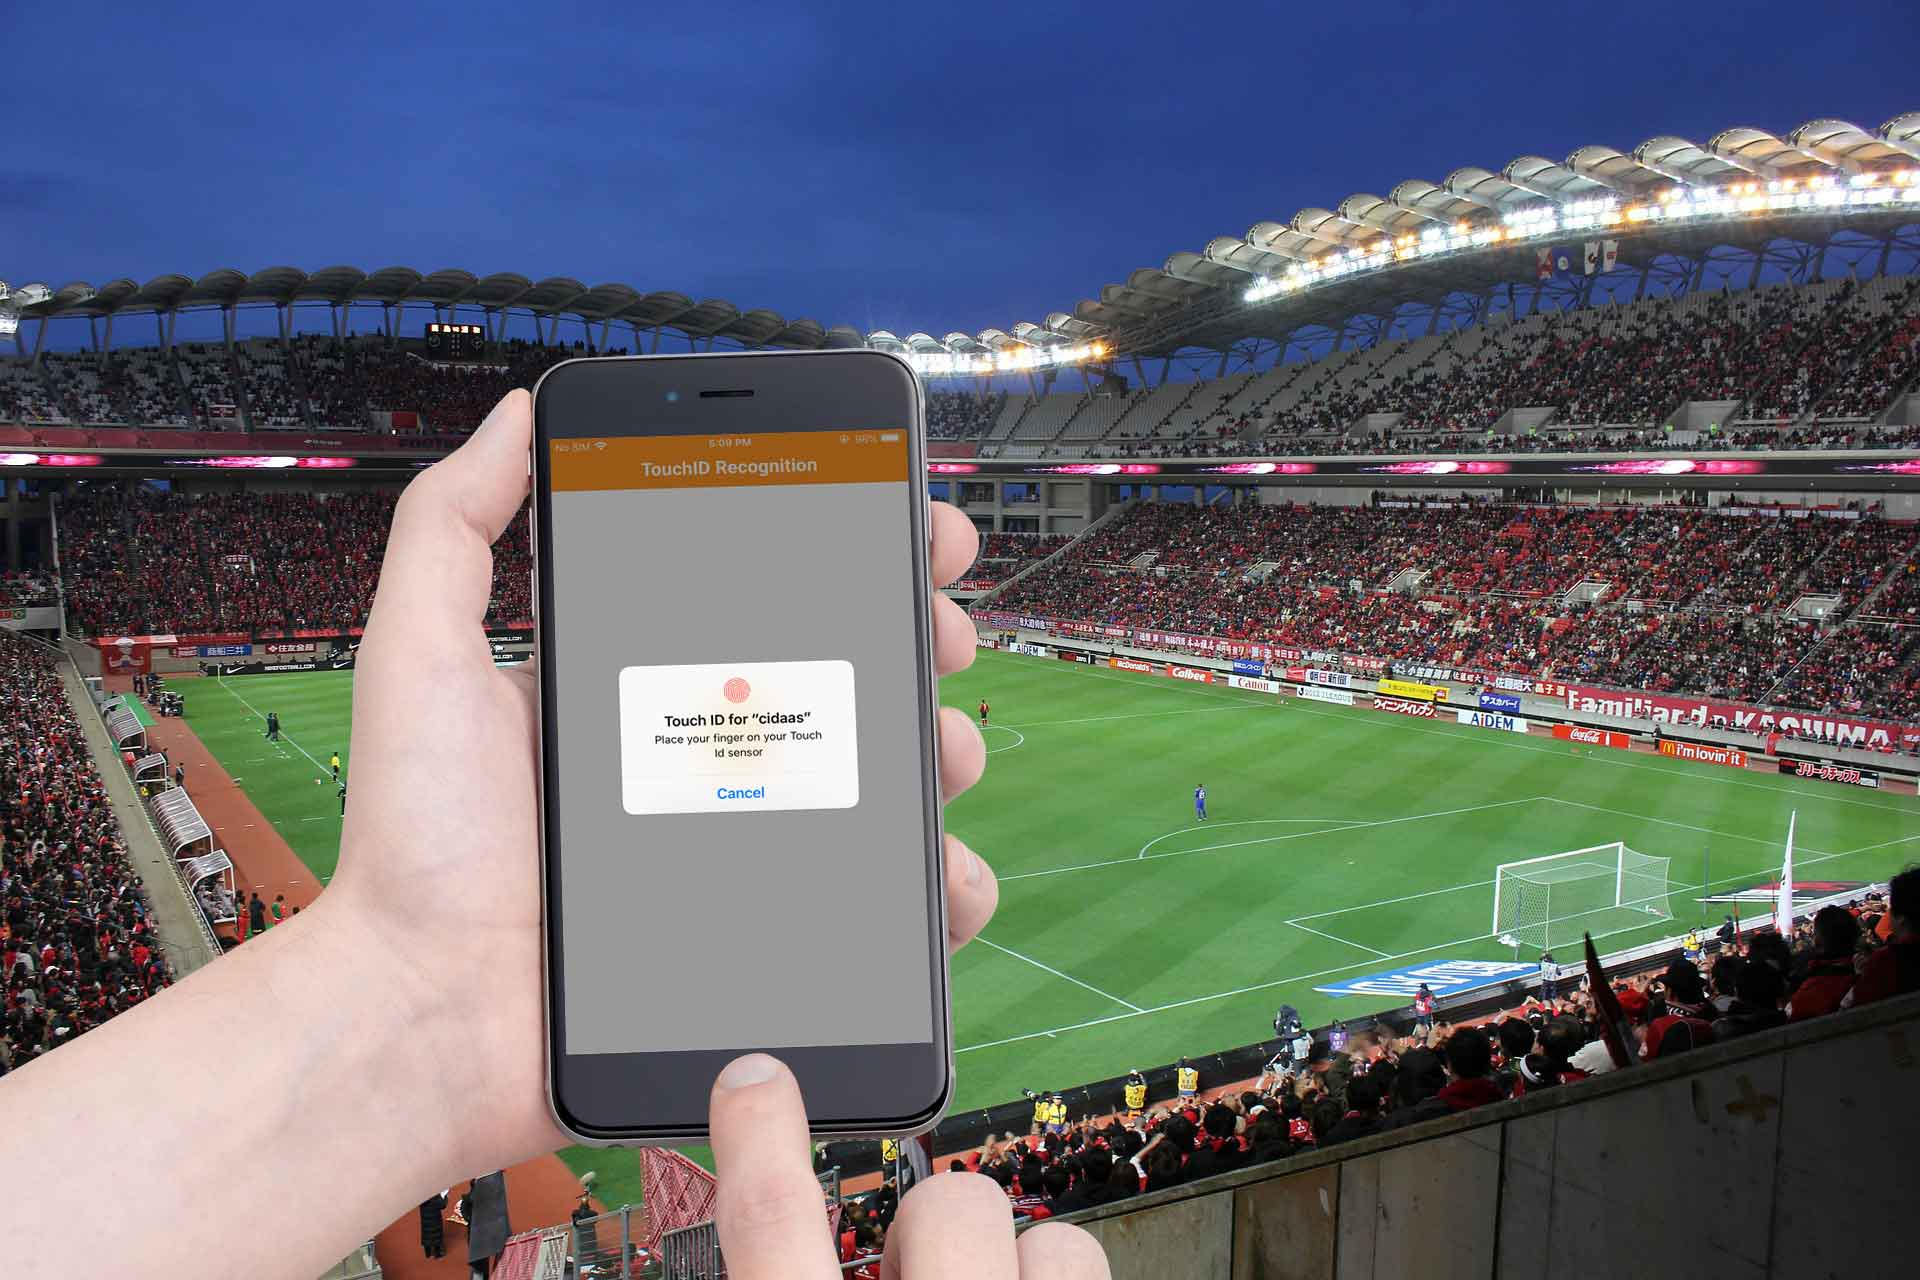 Digital access management through real-world identification at the event location